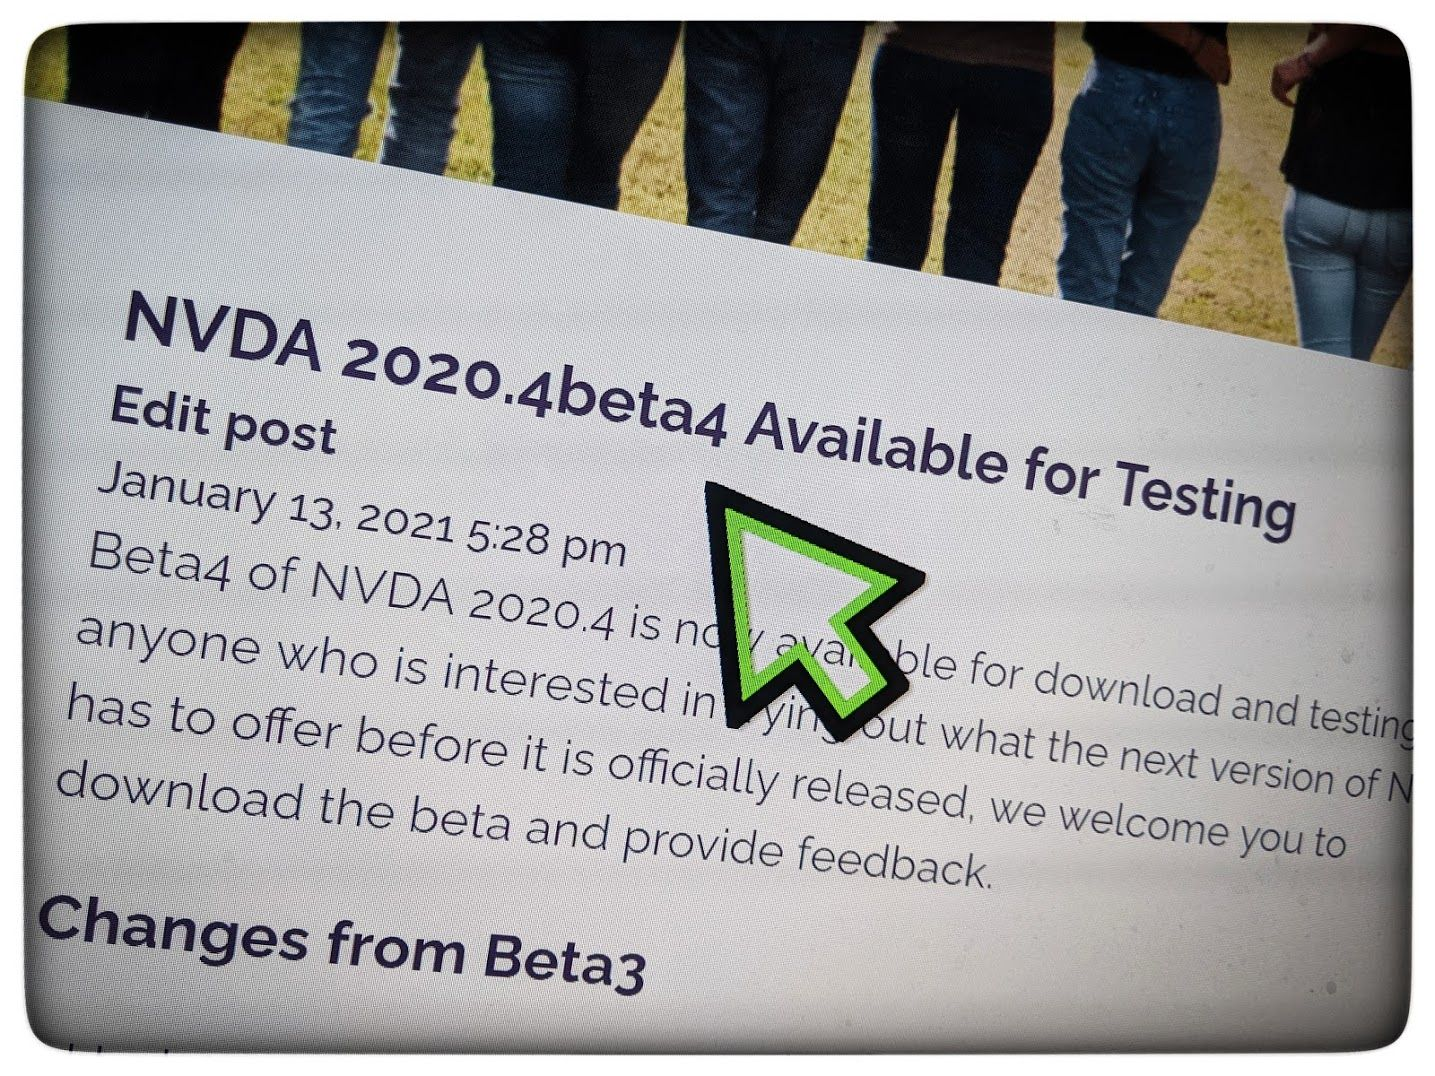 NVDA 2020.4beta4 release announcement screenshot